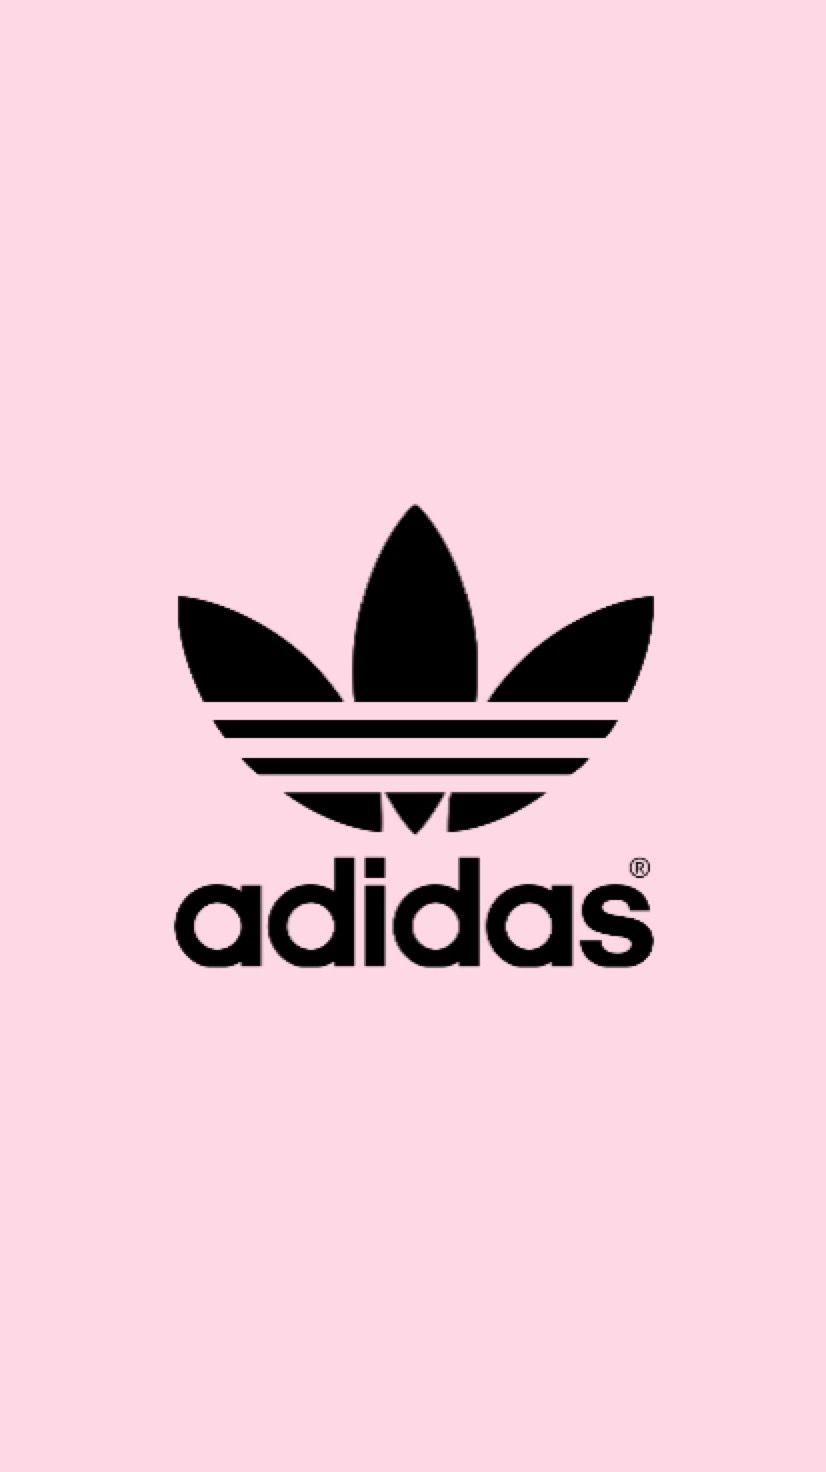 ☾pinterest Lamefangirl☽ Adidas Wallpapers Adidas